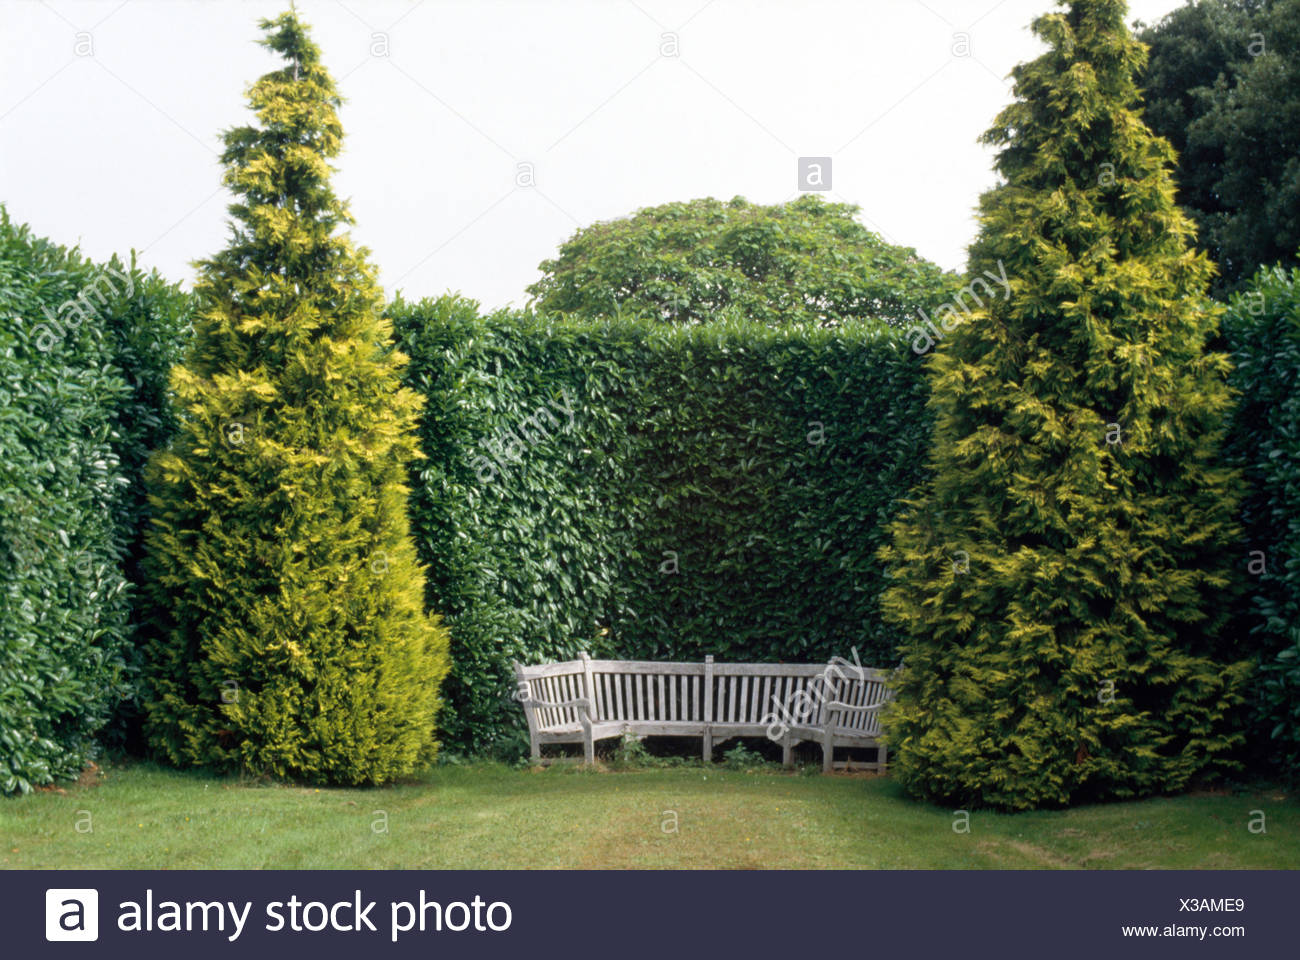 Conifers either side of semi-circular wooden seating against tall clipped hedge in large country garden - Stock Image